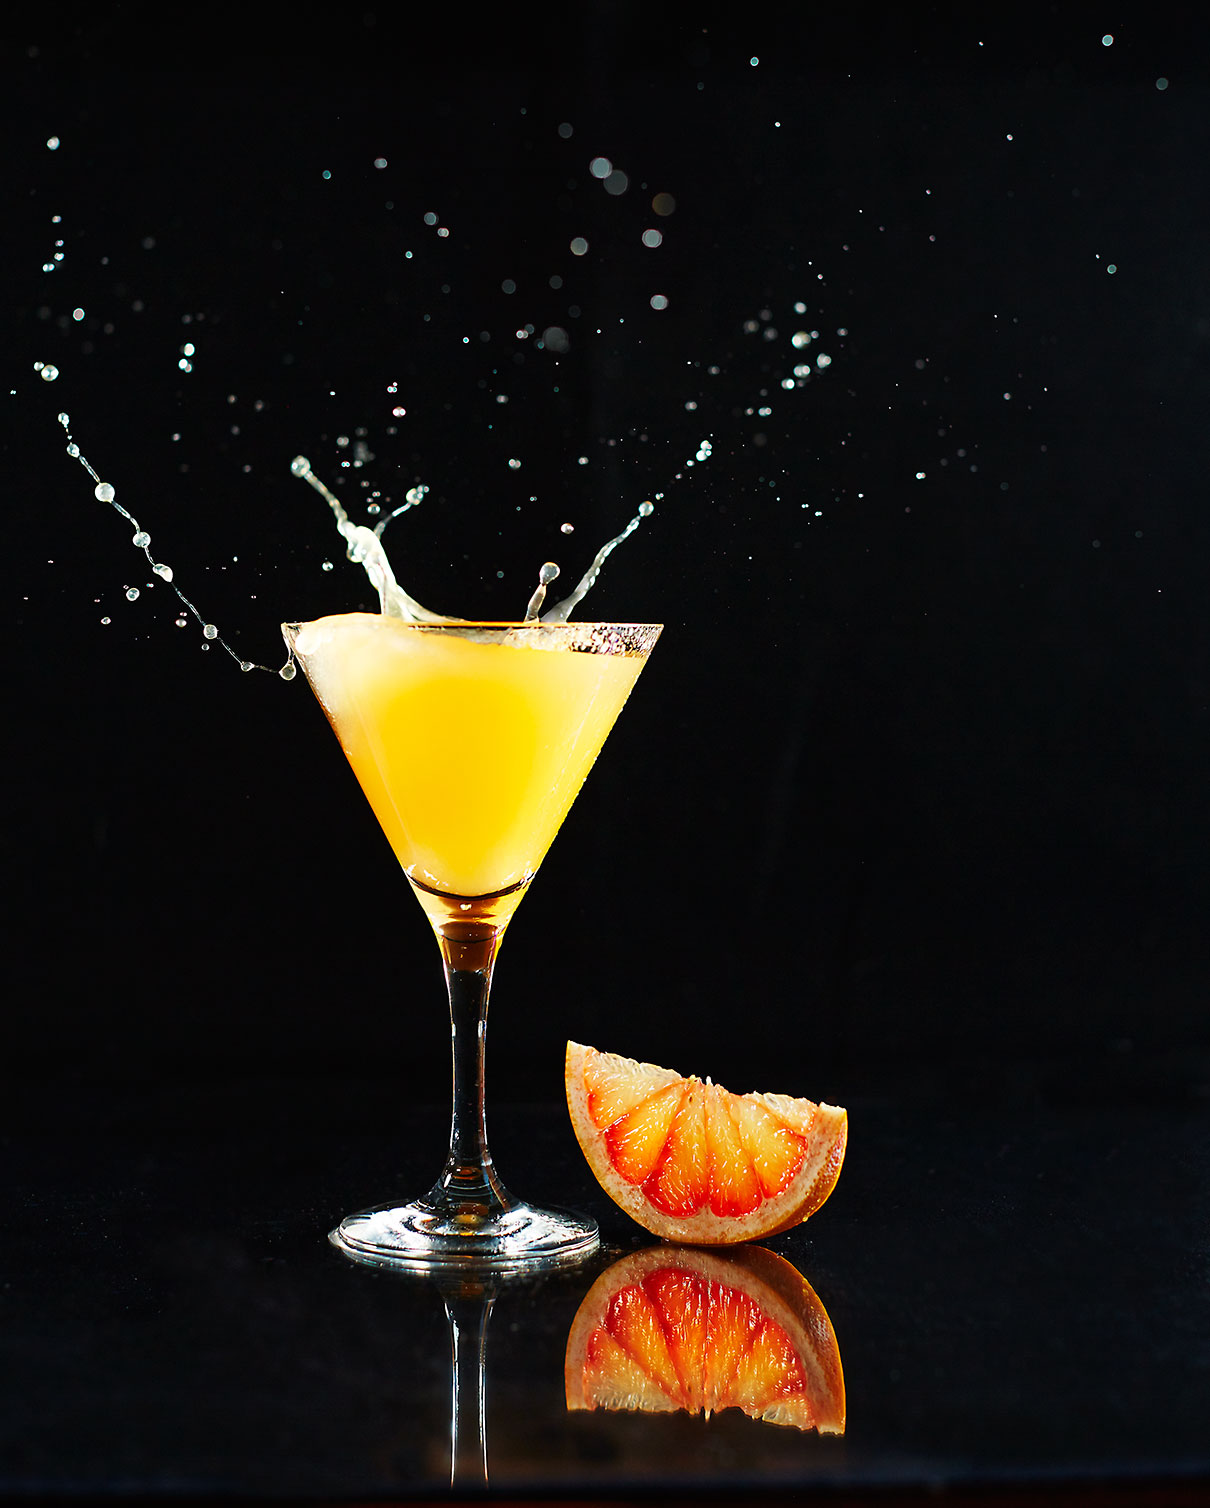 Splash of orange cocktail by Kelly Liken